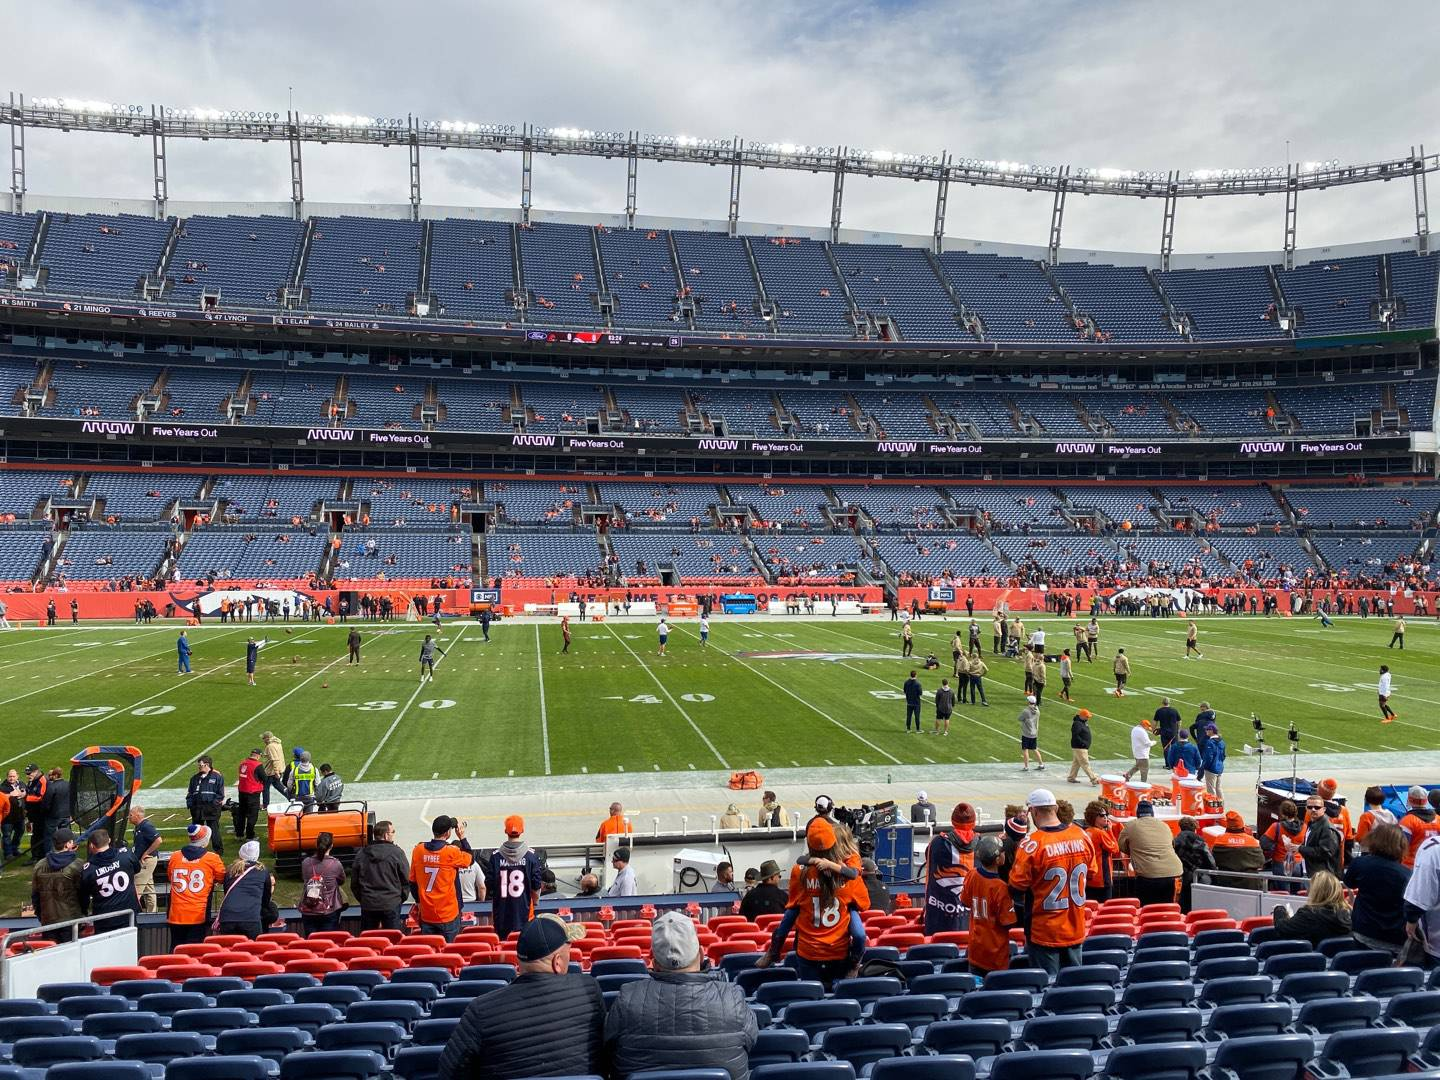 Empower Field at Mile High Stadium Section 106 Row 16 Seat 14